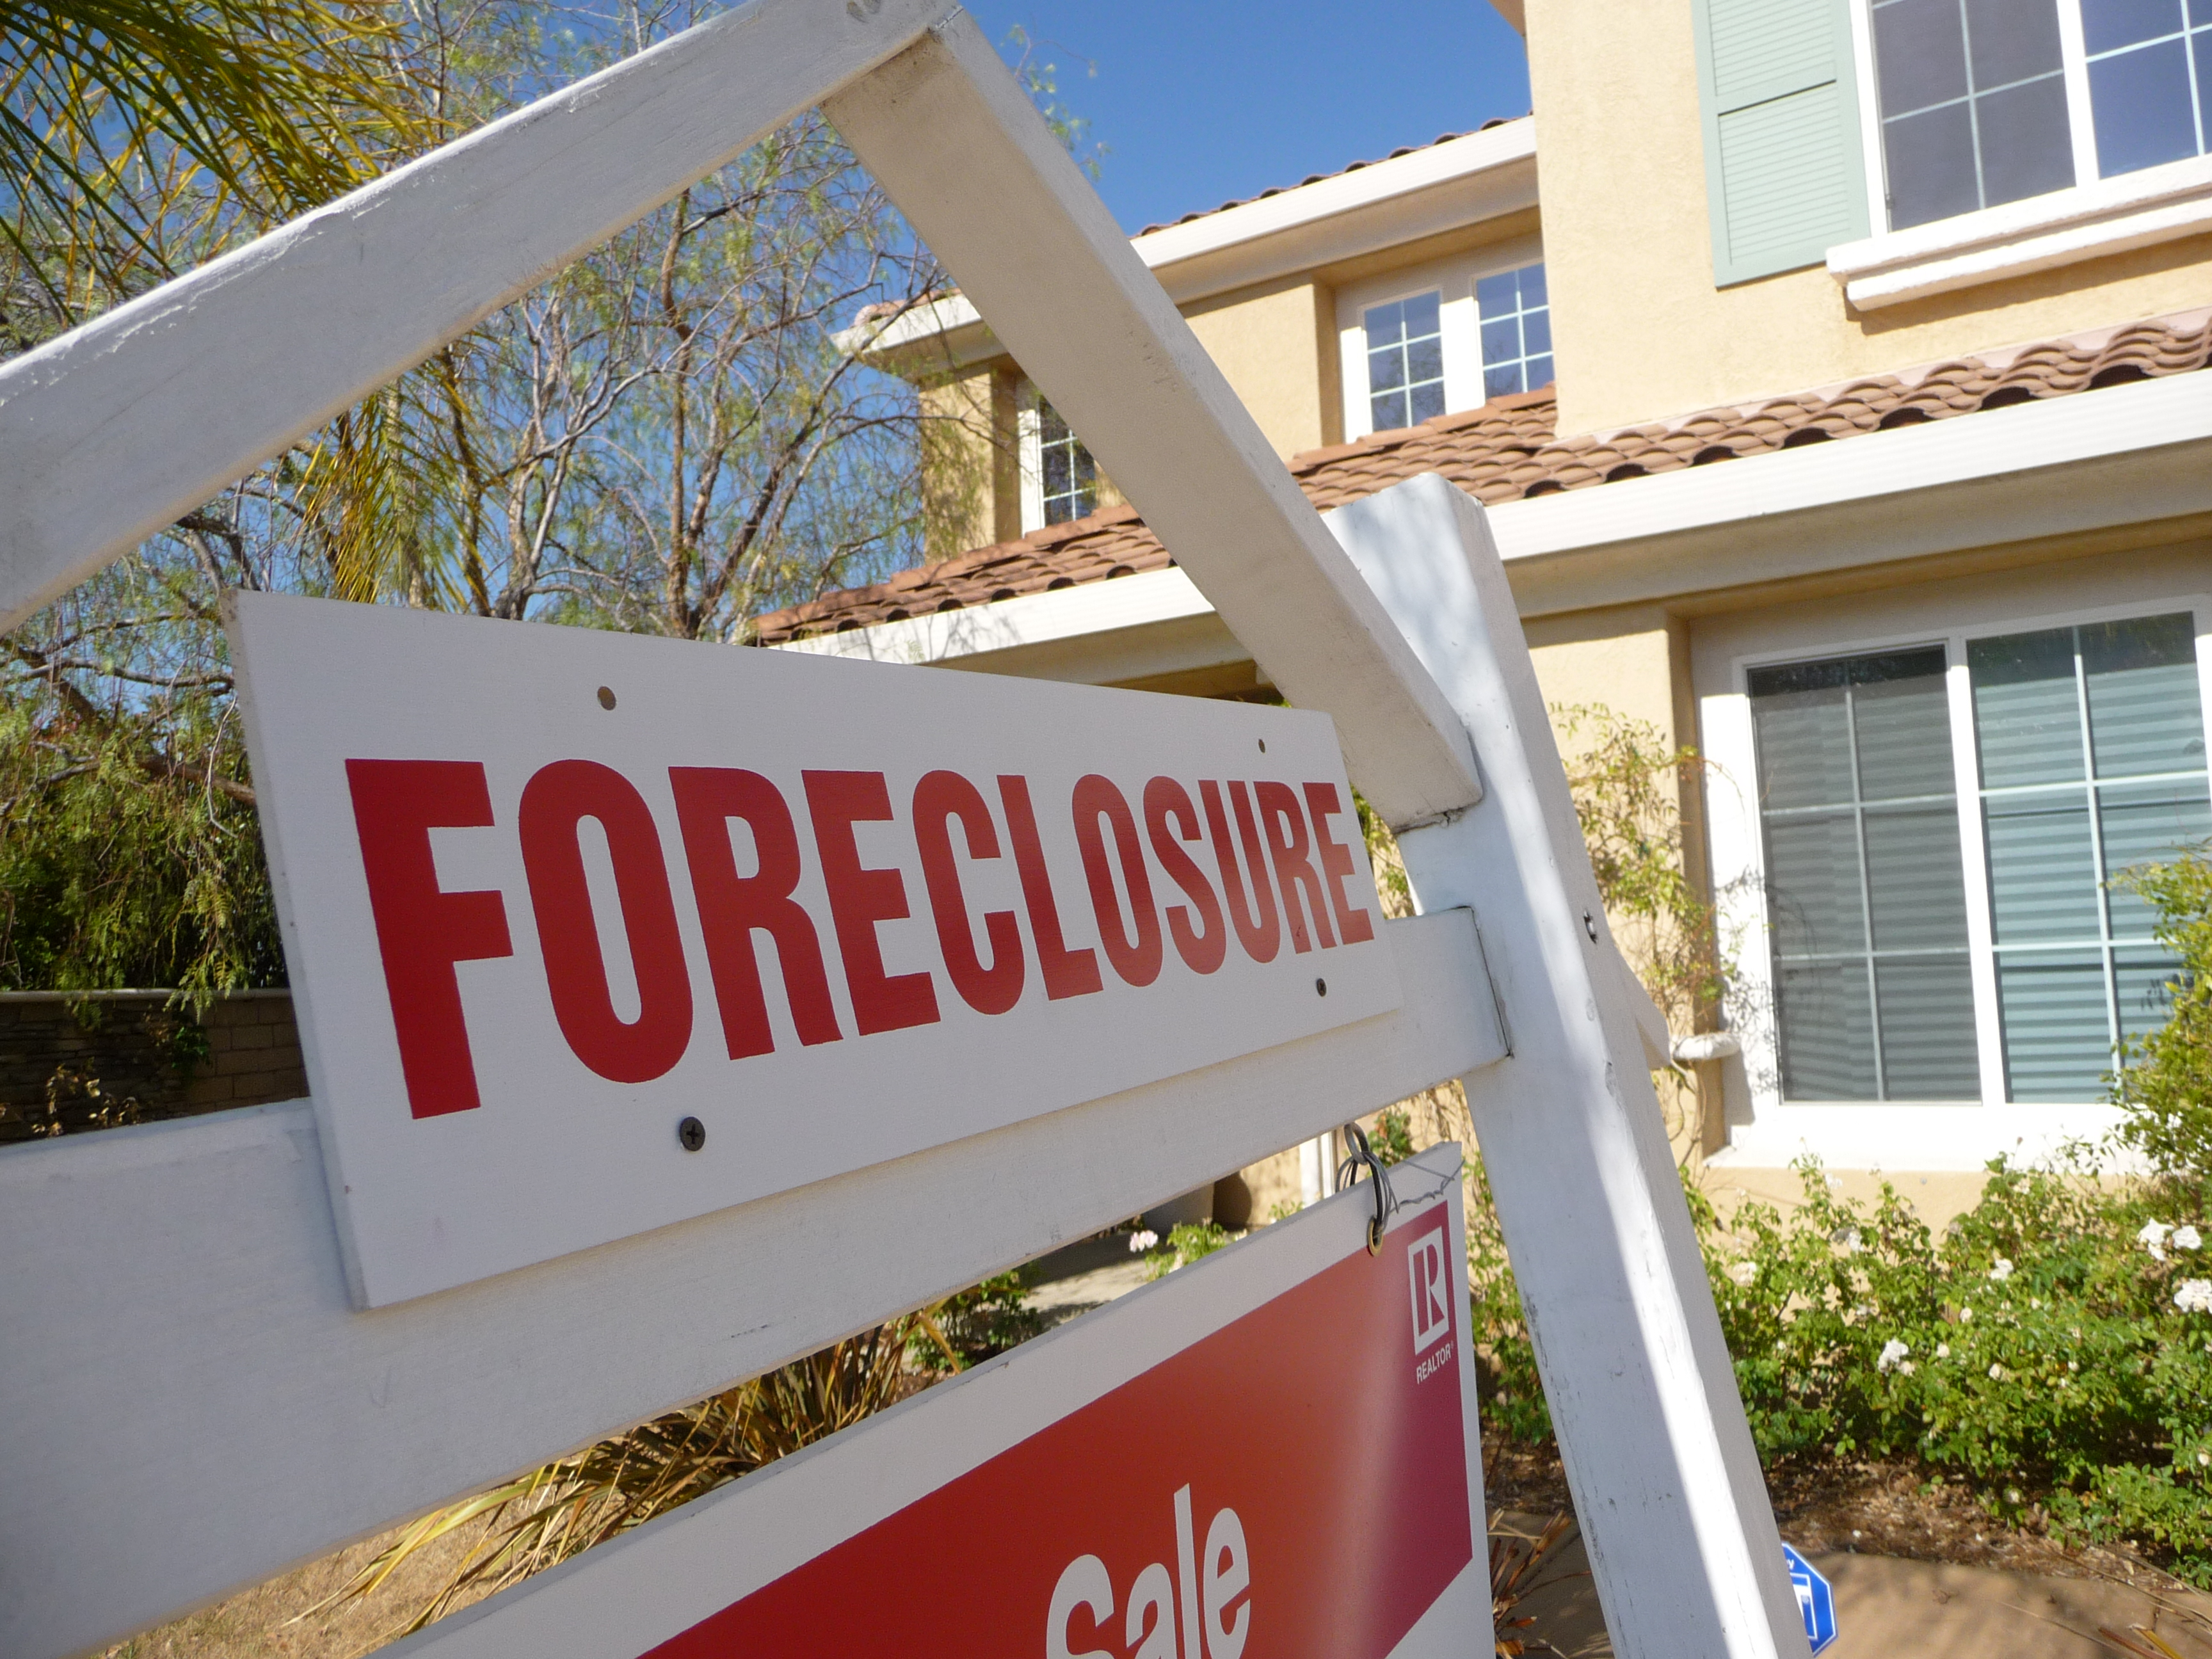 Dependable Homebuyers Nashville Buys Houses in Foreclosure